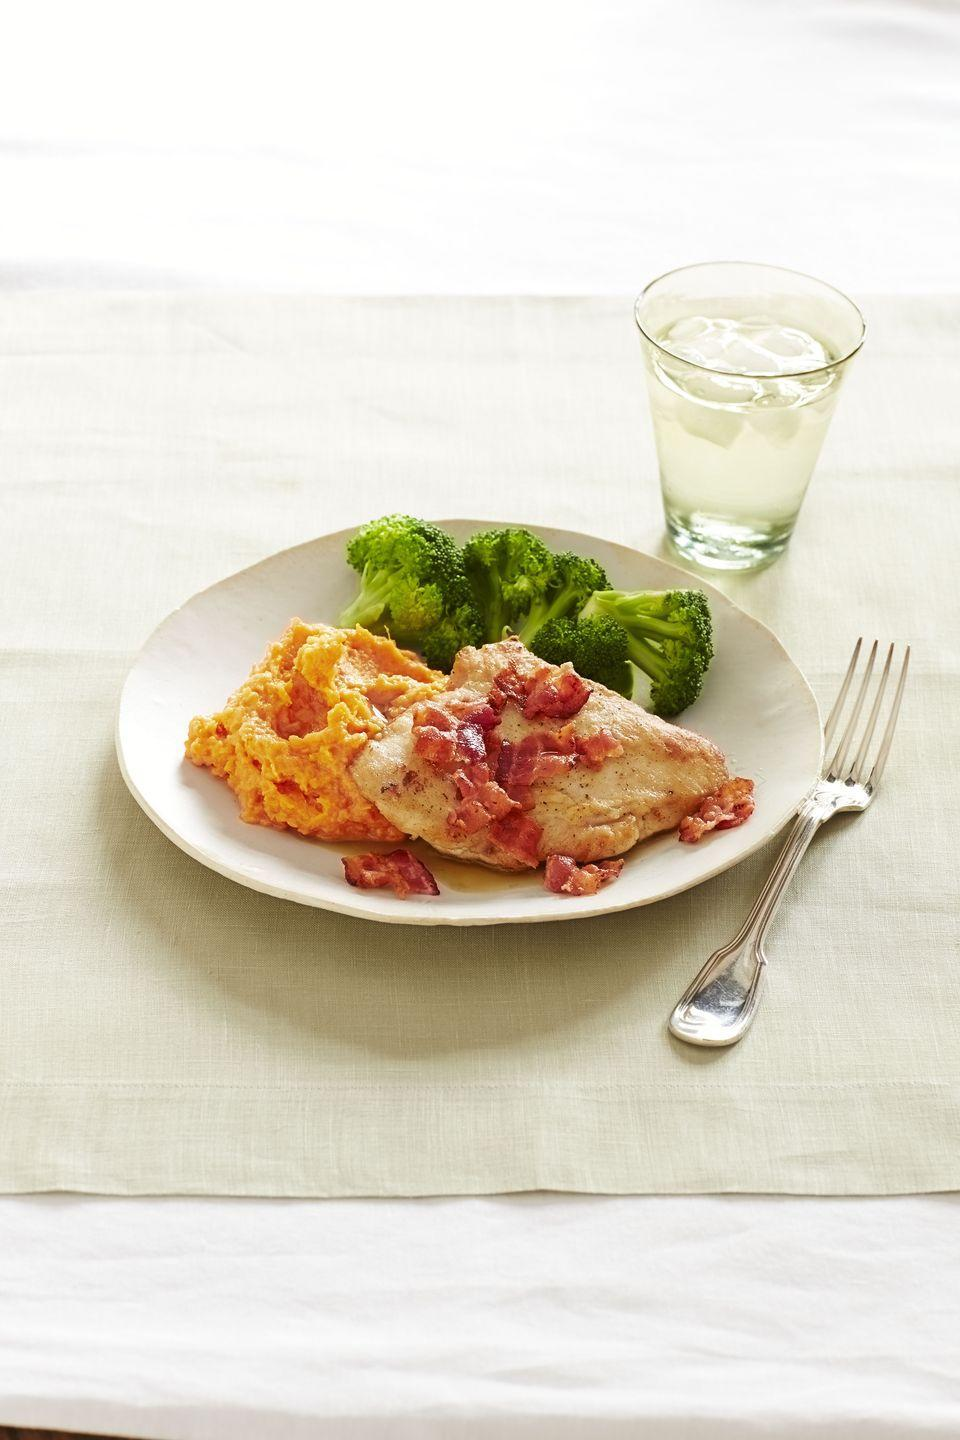 """<p>Shake things up by reimagining a classic chicken breast dinner with a flavorful side of sweet potatoes in place of regular spuds. </p><p><a href=""""https://www.goodhousekeeping.com/food-recipes/a14603/bacon-chicken-cutlets-sweet-potato-mash-recipe-ghk1113/"""" rel=""""nofollow noopener"""" target=""""_blank"""" data-ylk=""""slk:Get the recipe for Bacon Chicken Cutlets with Sweet Potato Mash »"""" class=""""link rapid-noclick-resp""""><em>Get the recipe for Bacon Chicken Cutlets with Sweet Potato Mash »</em></a></p>"""